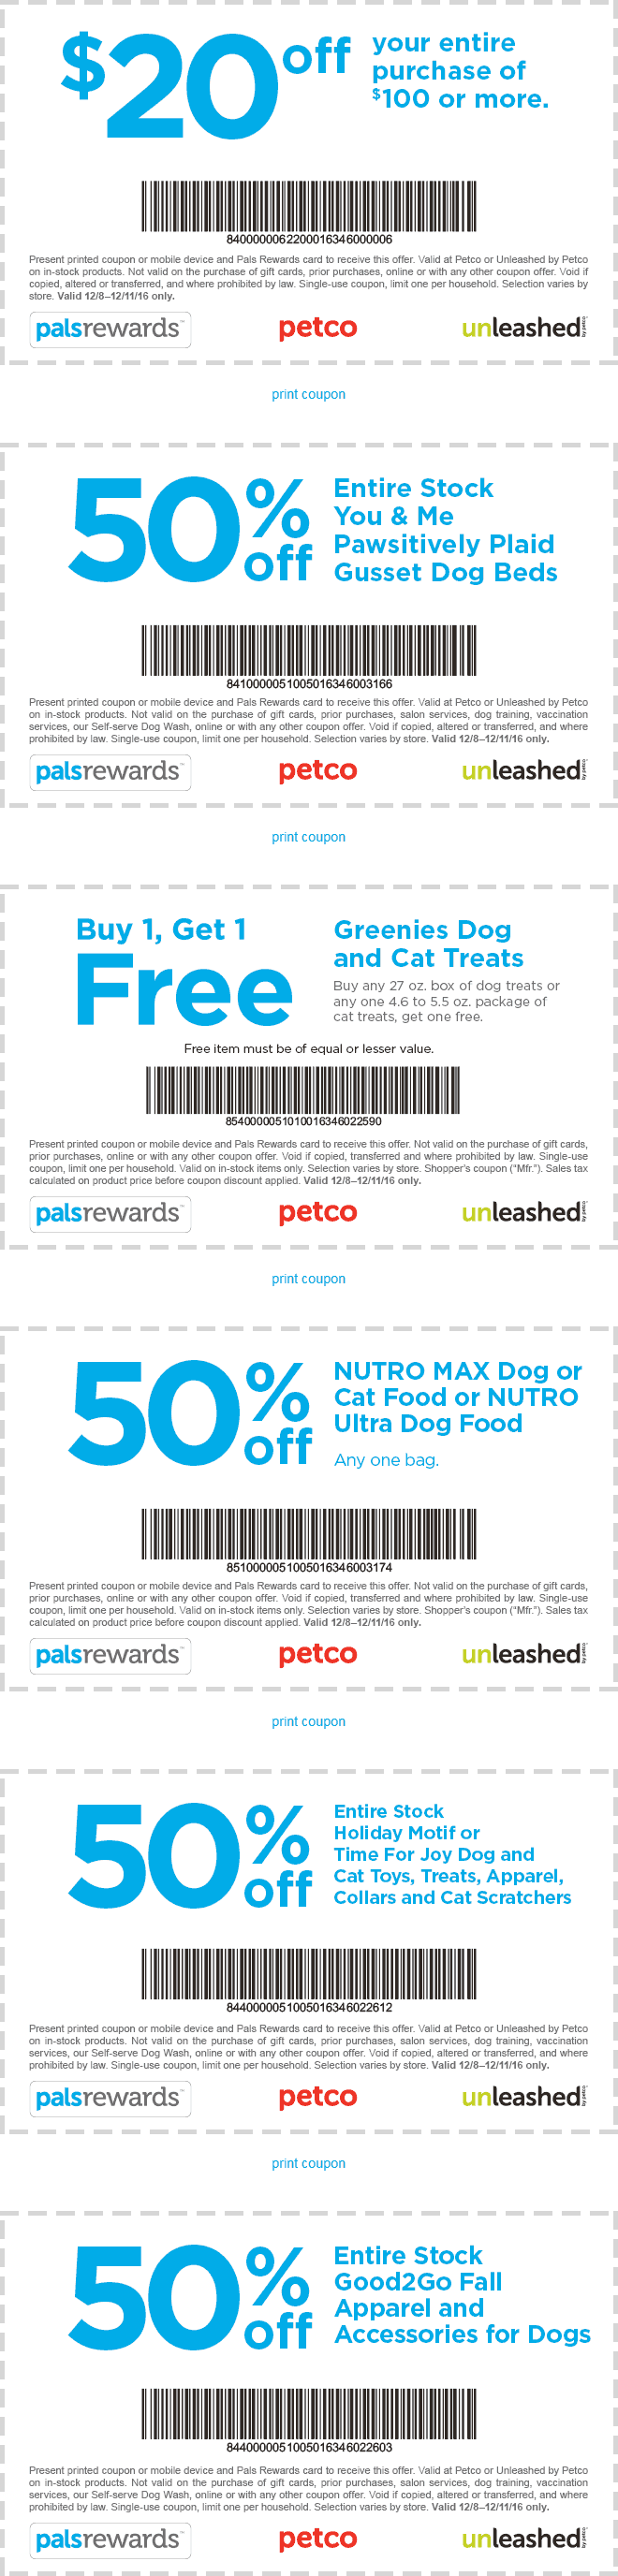 Petco.com Promo Coupon $20 off $100 & more at Petco